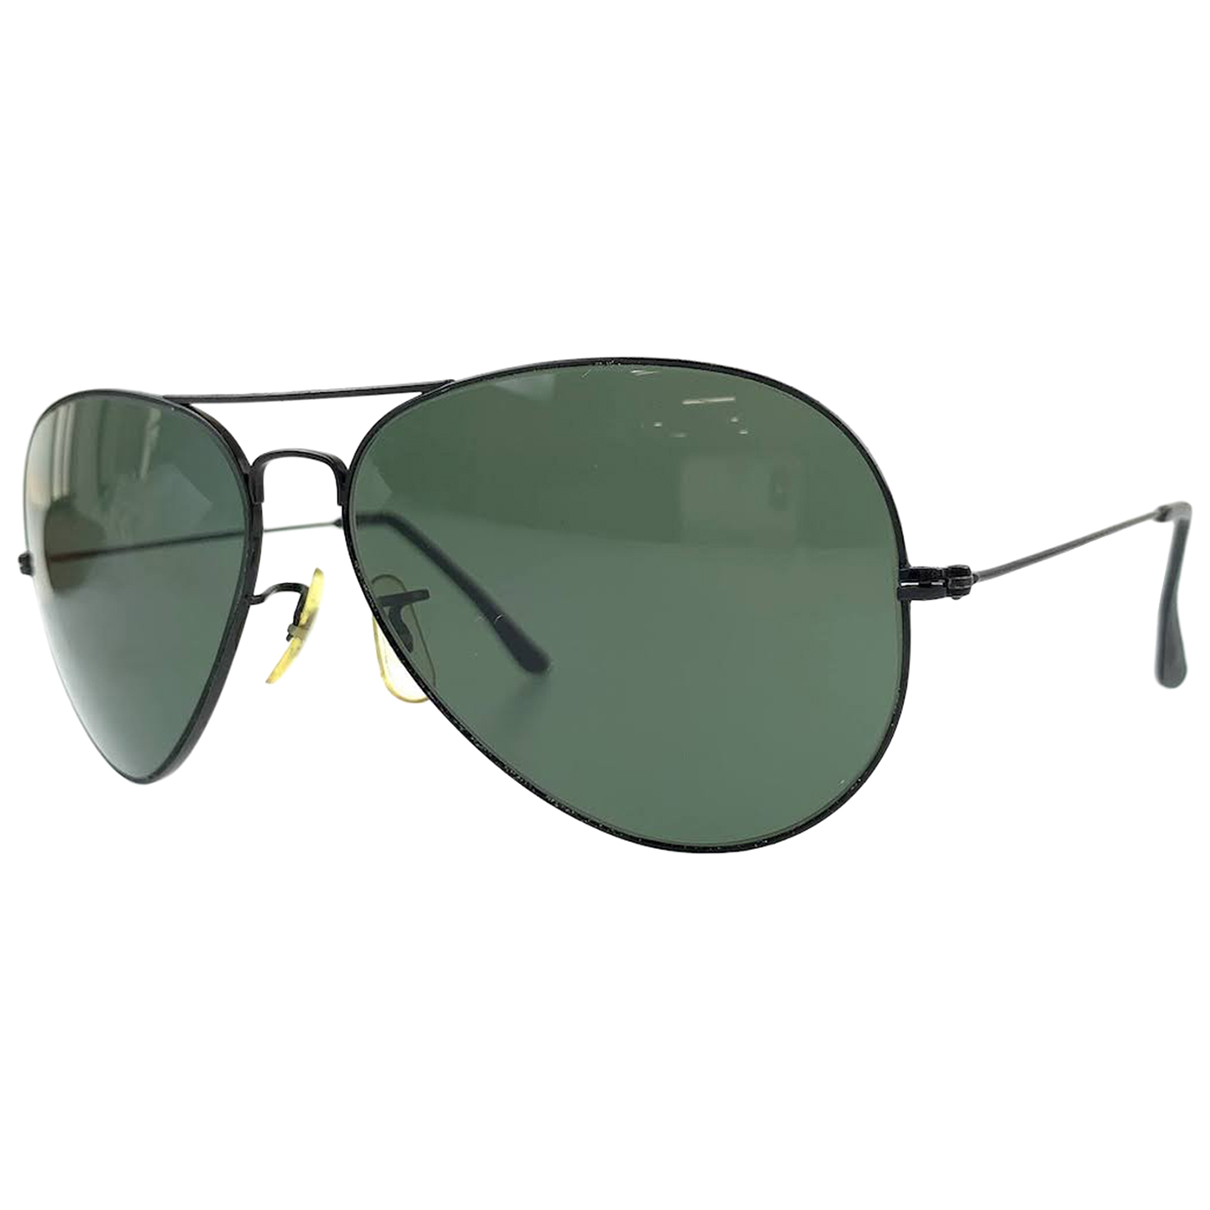 Ray-ban - Lunettes   pour homme